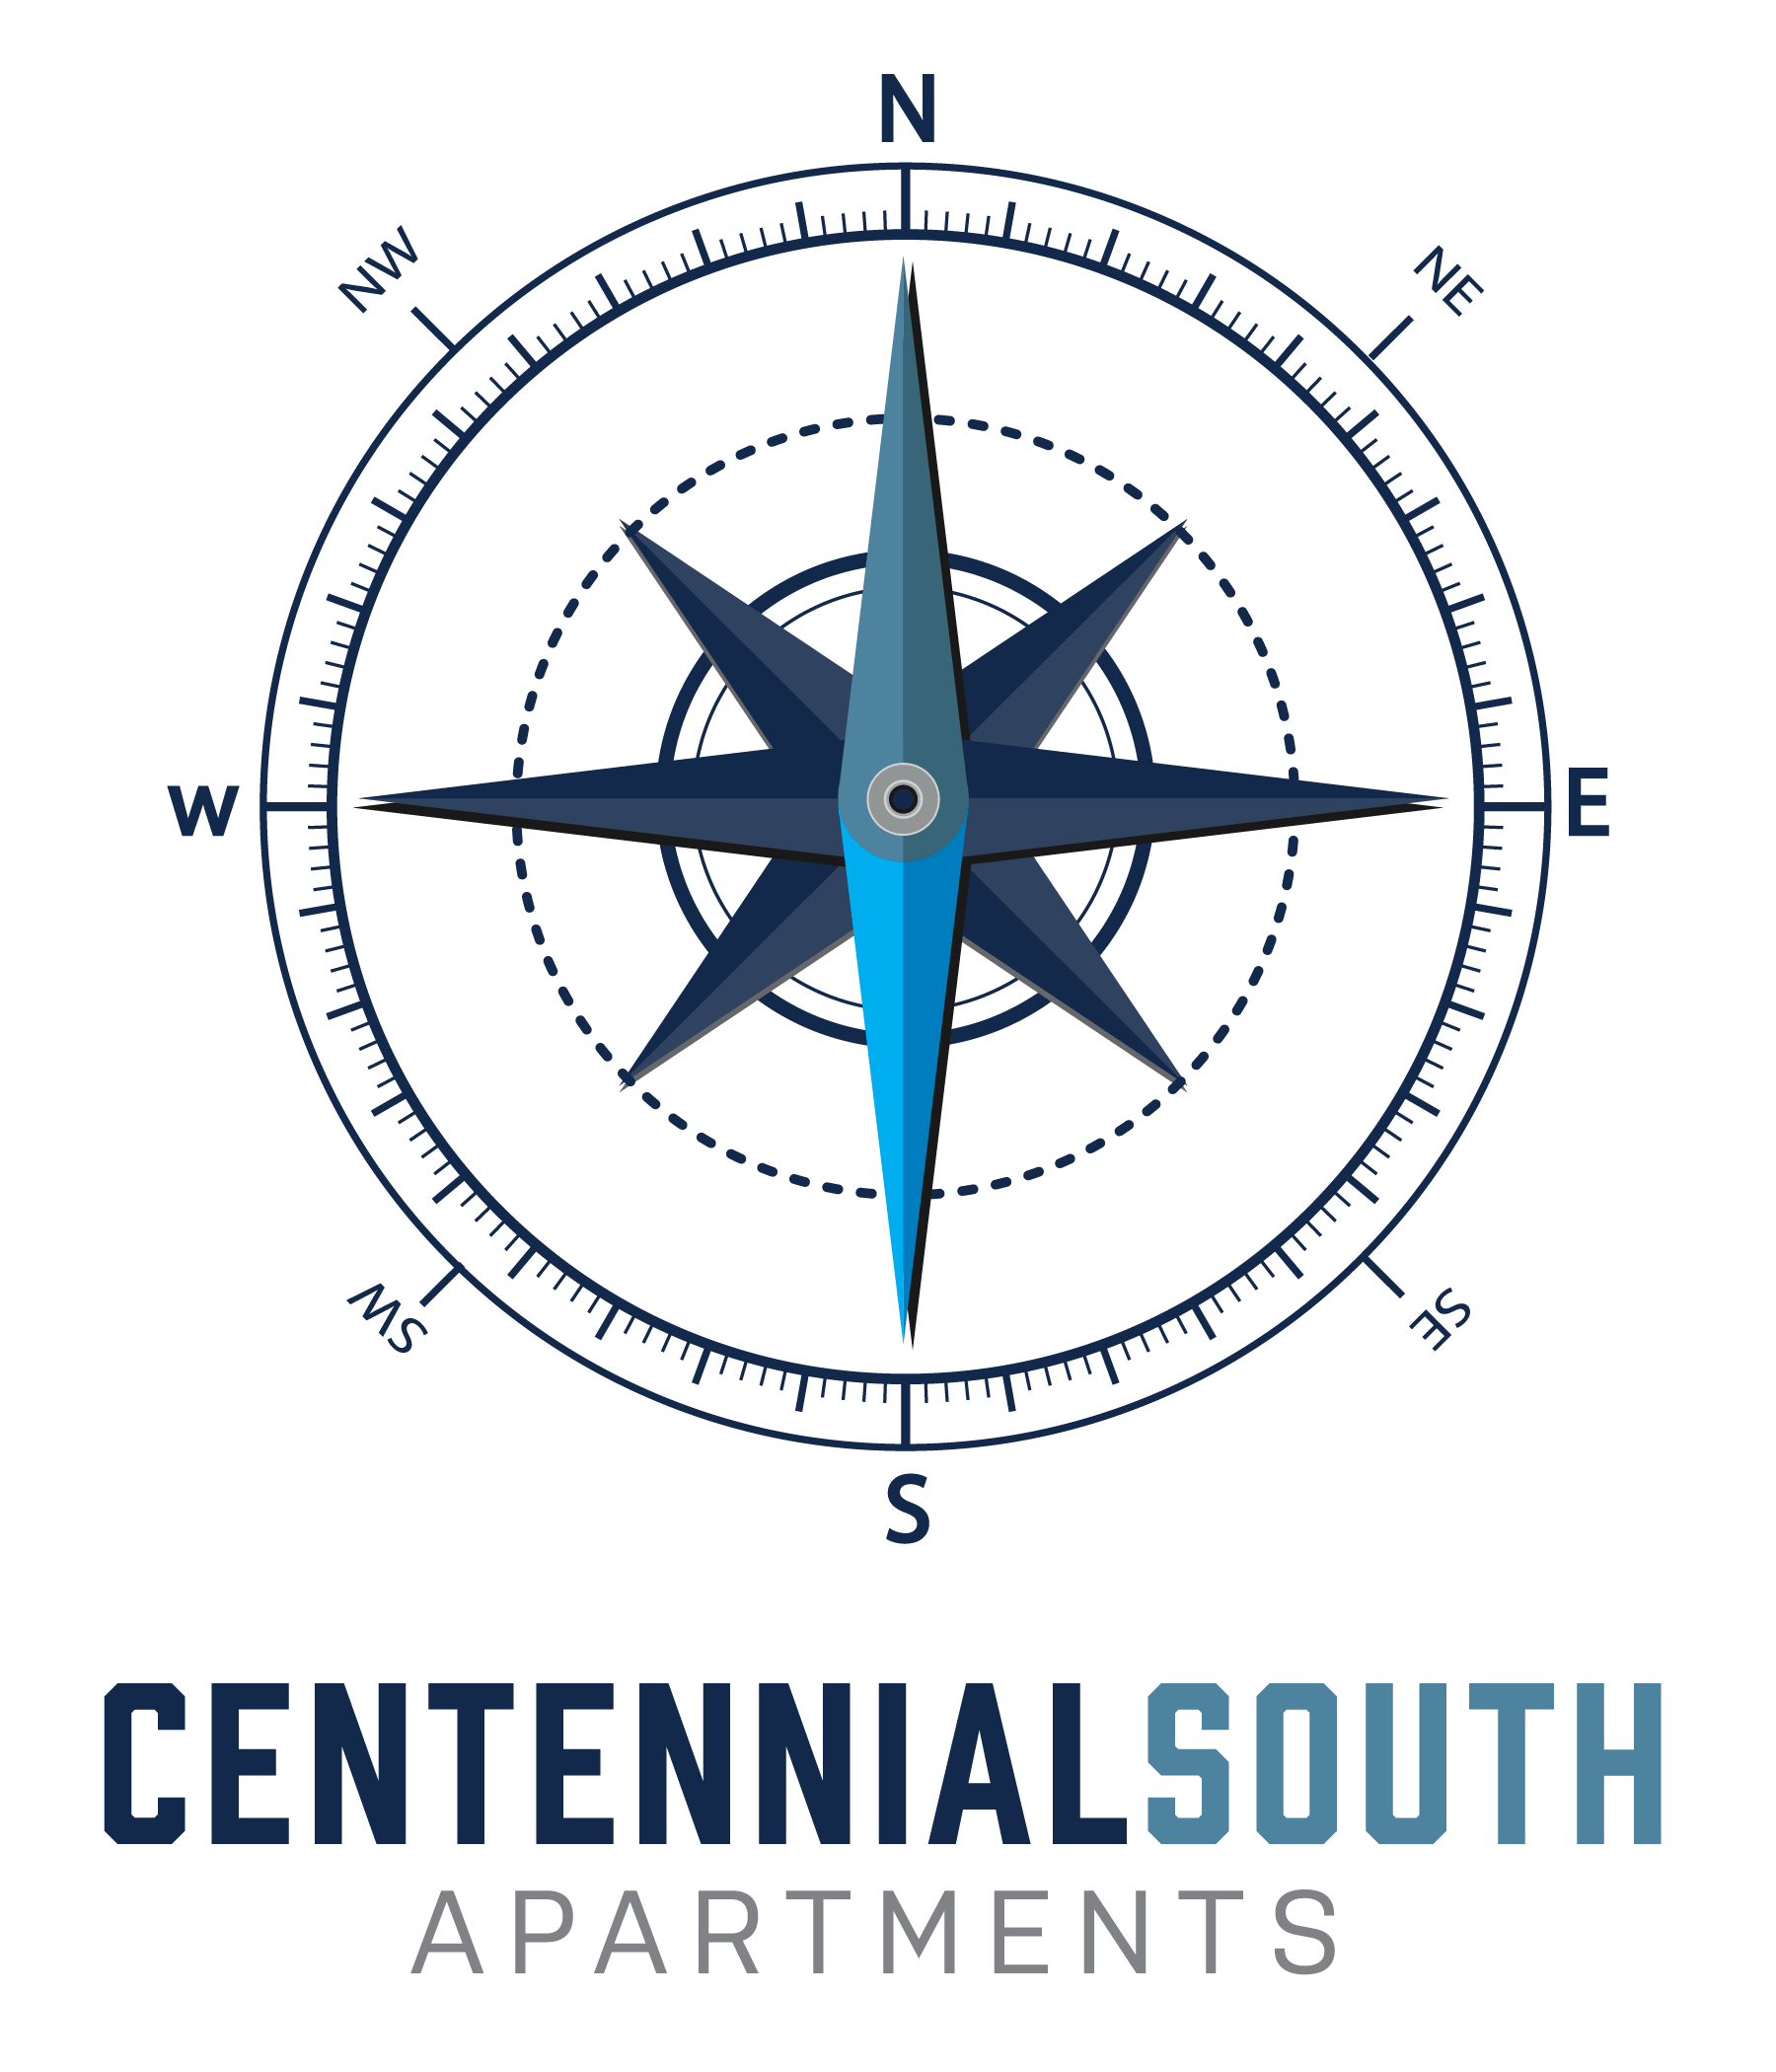 Centennial South in Mount Prospect, IL